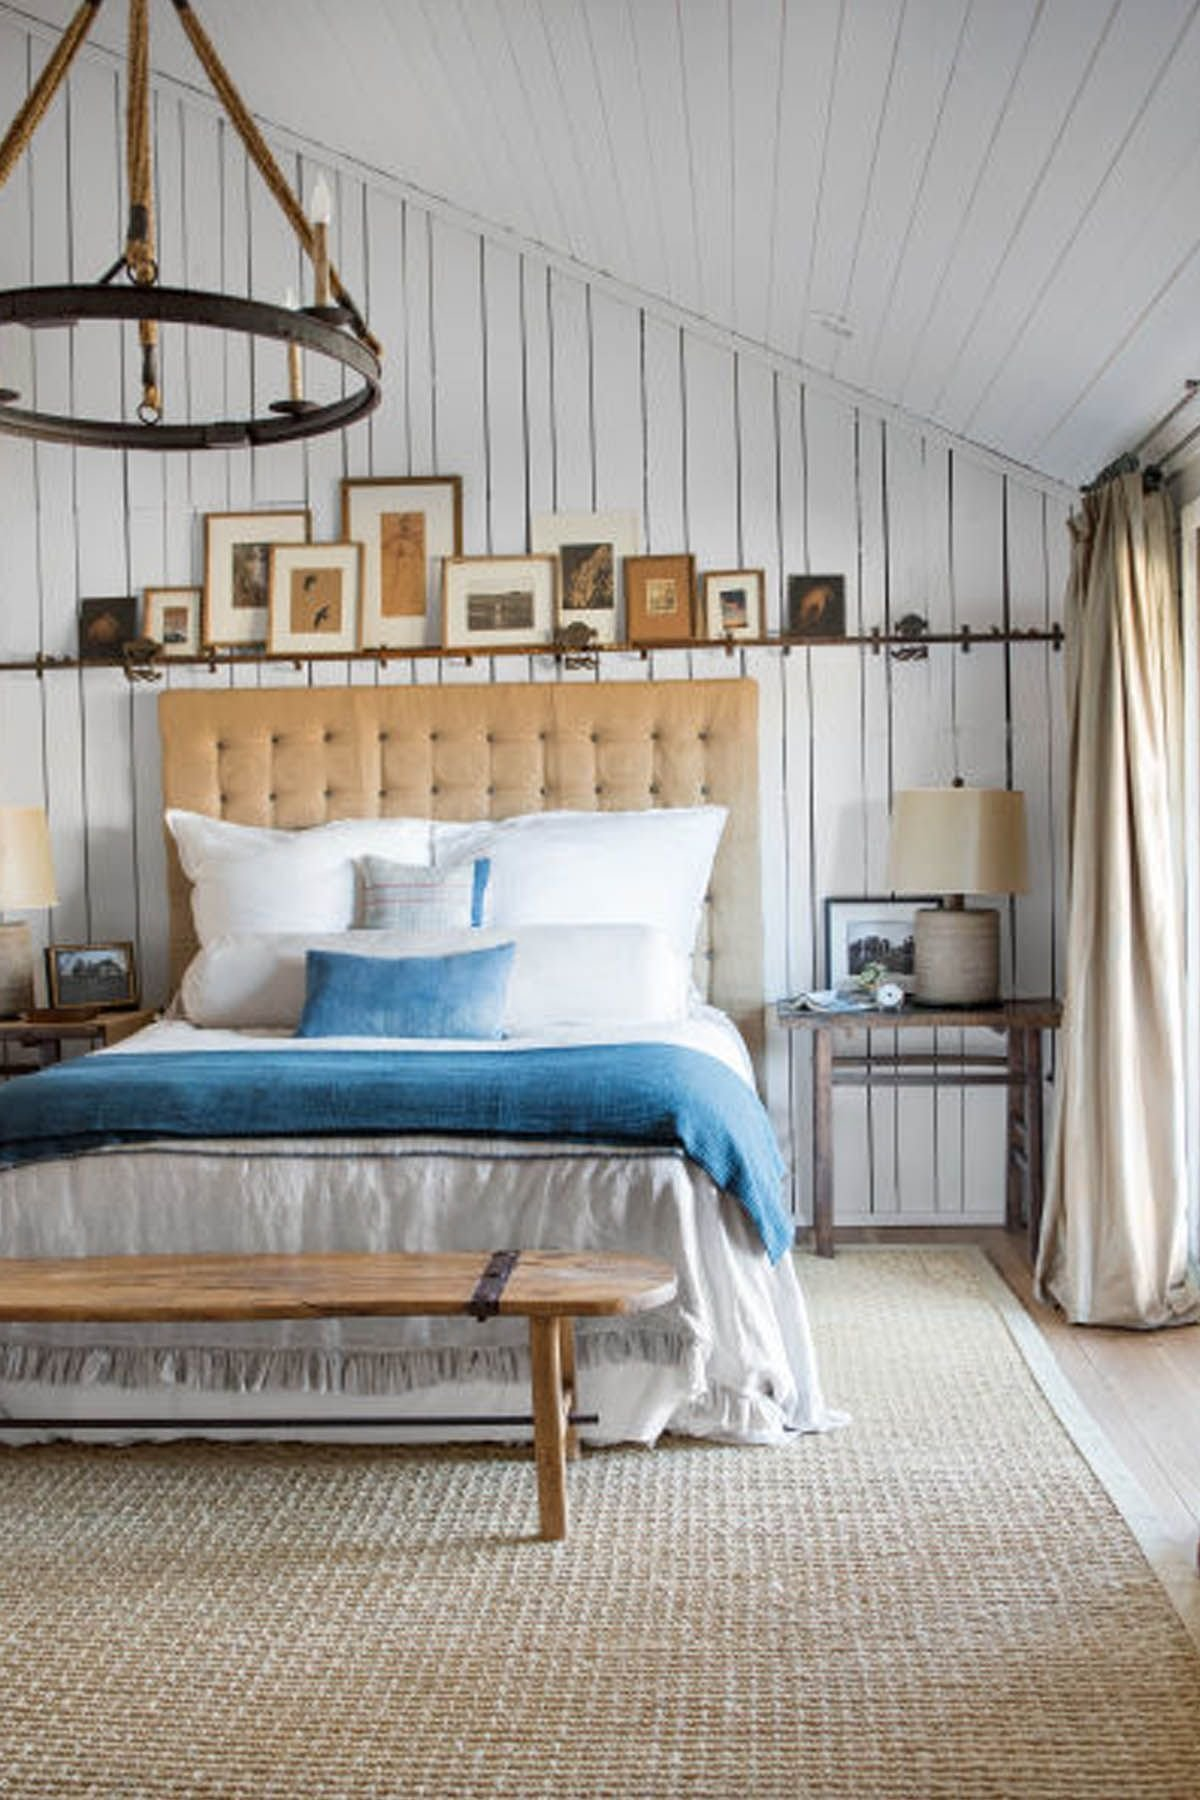 Best 37 Cozy Bedroom Ideas How To Make Your Room Feel Cozy With Pictures